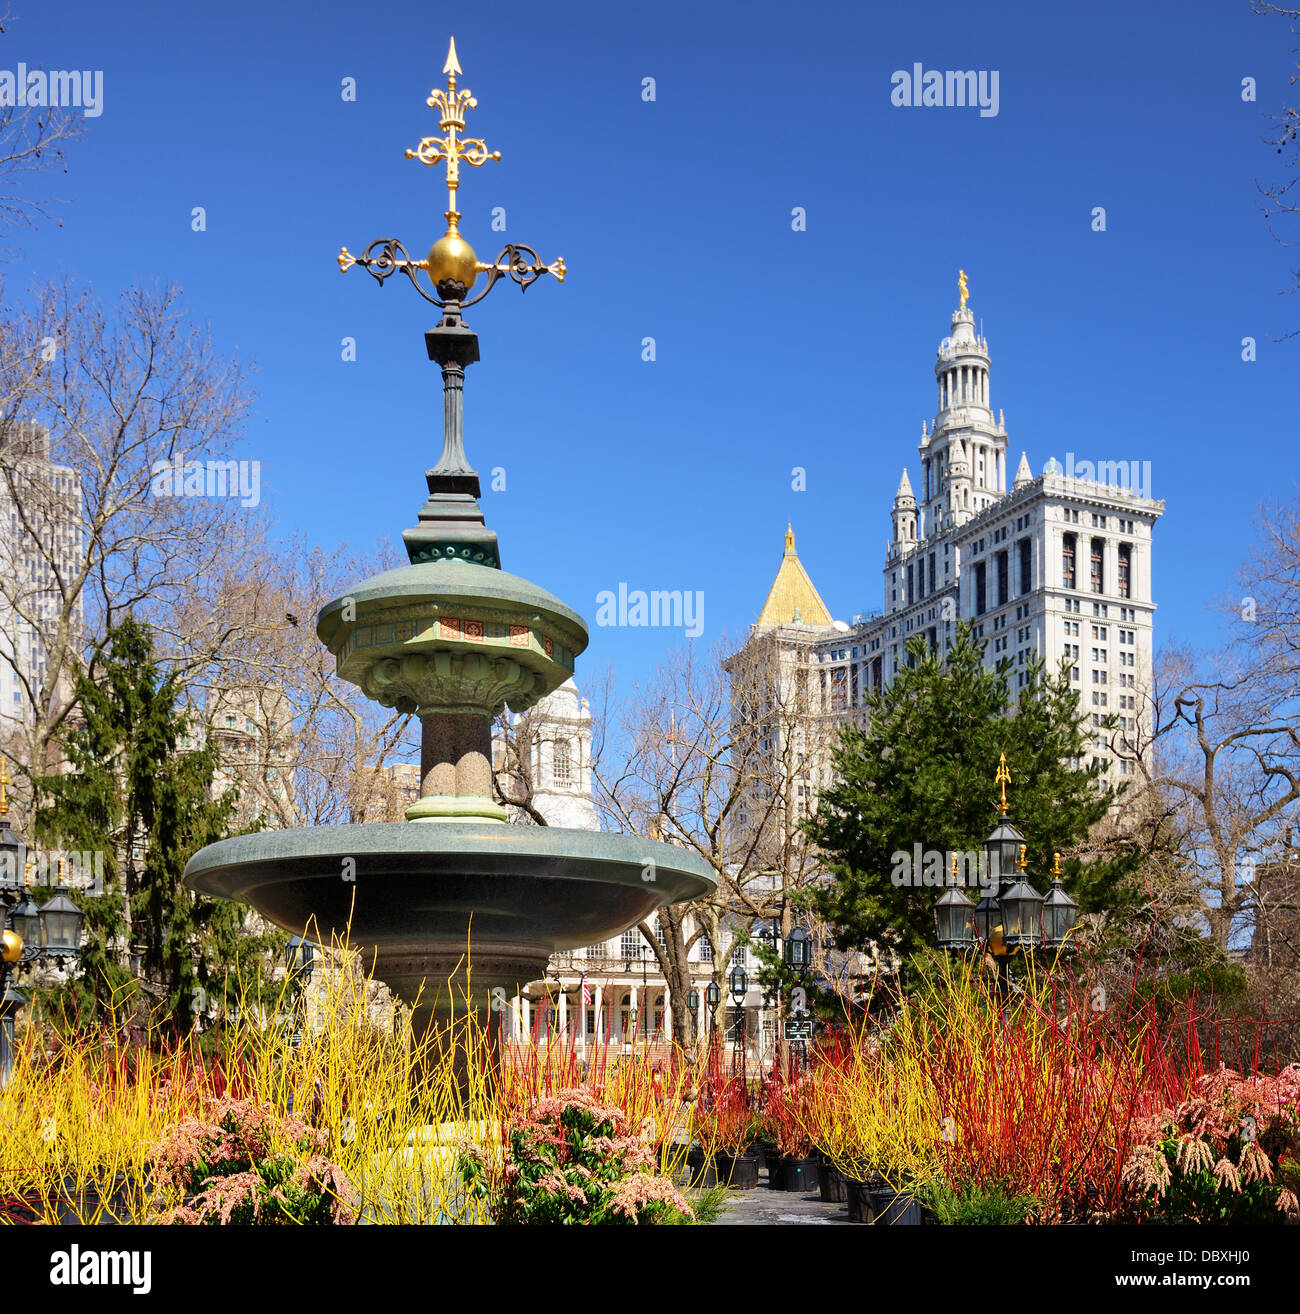 City Hall Park in New York City. - Stock Image